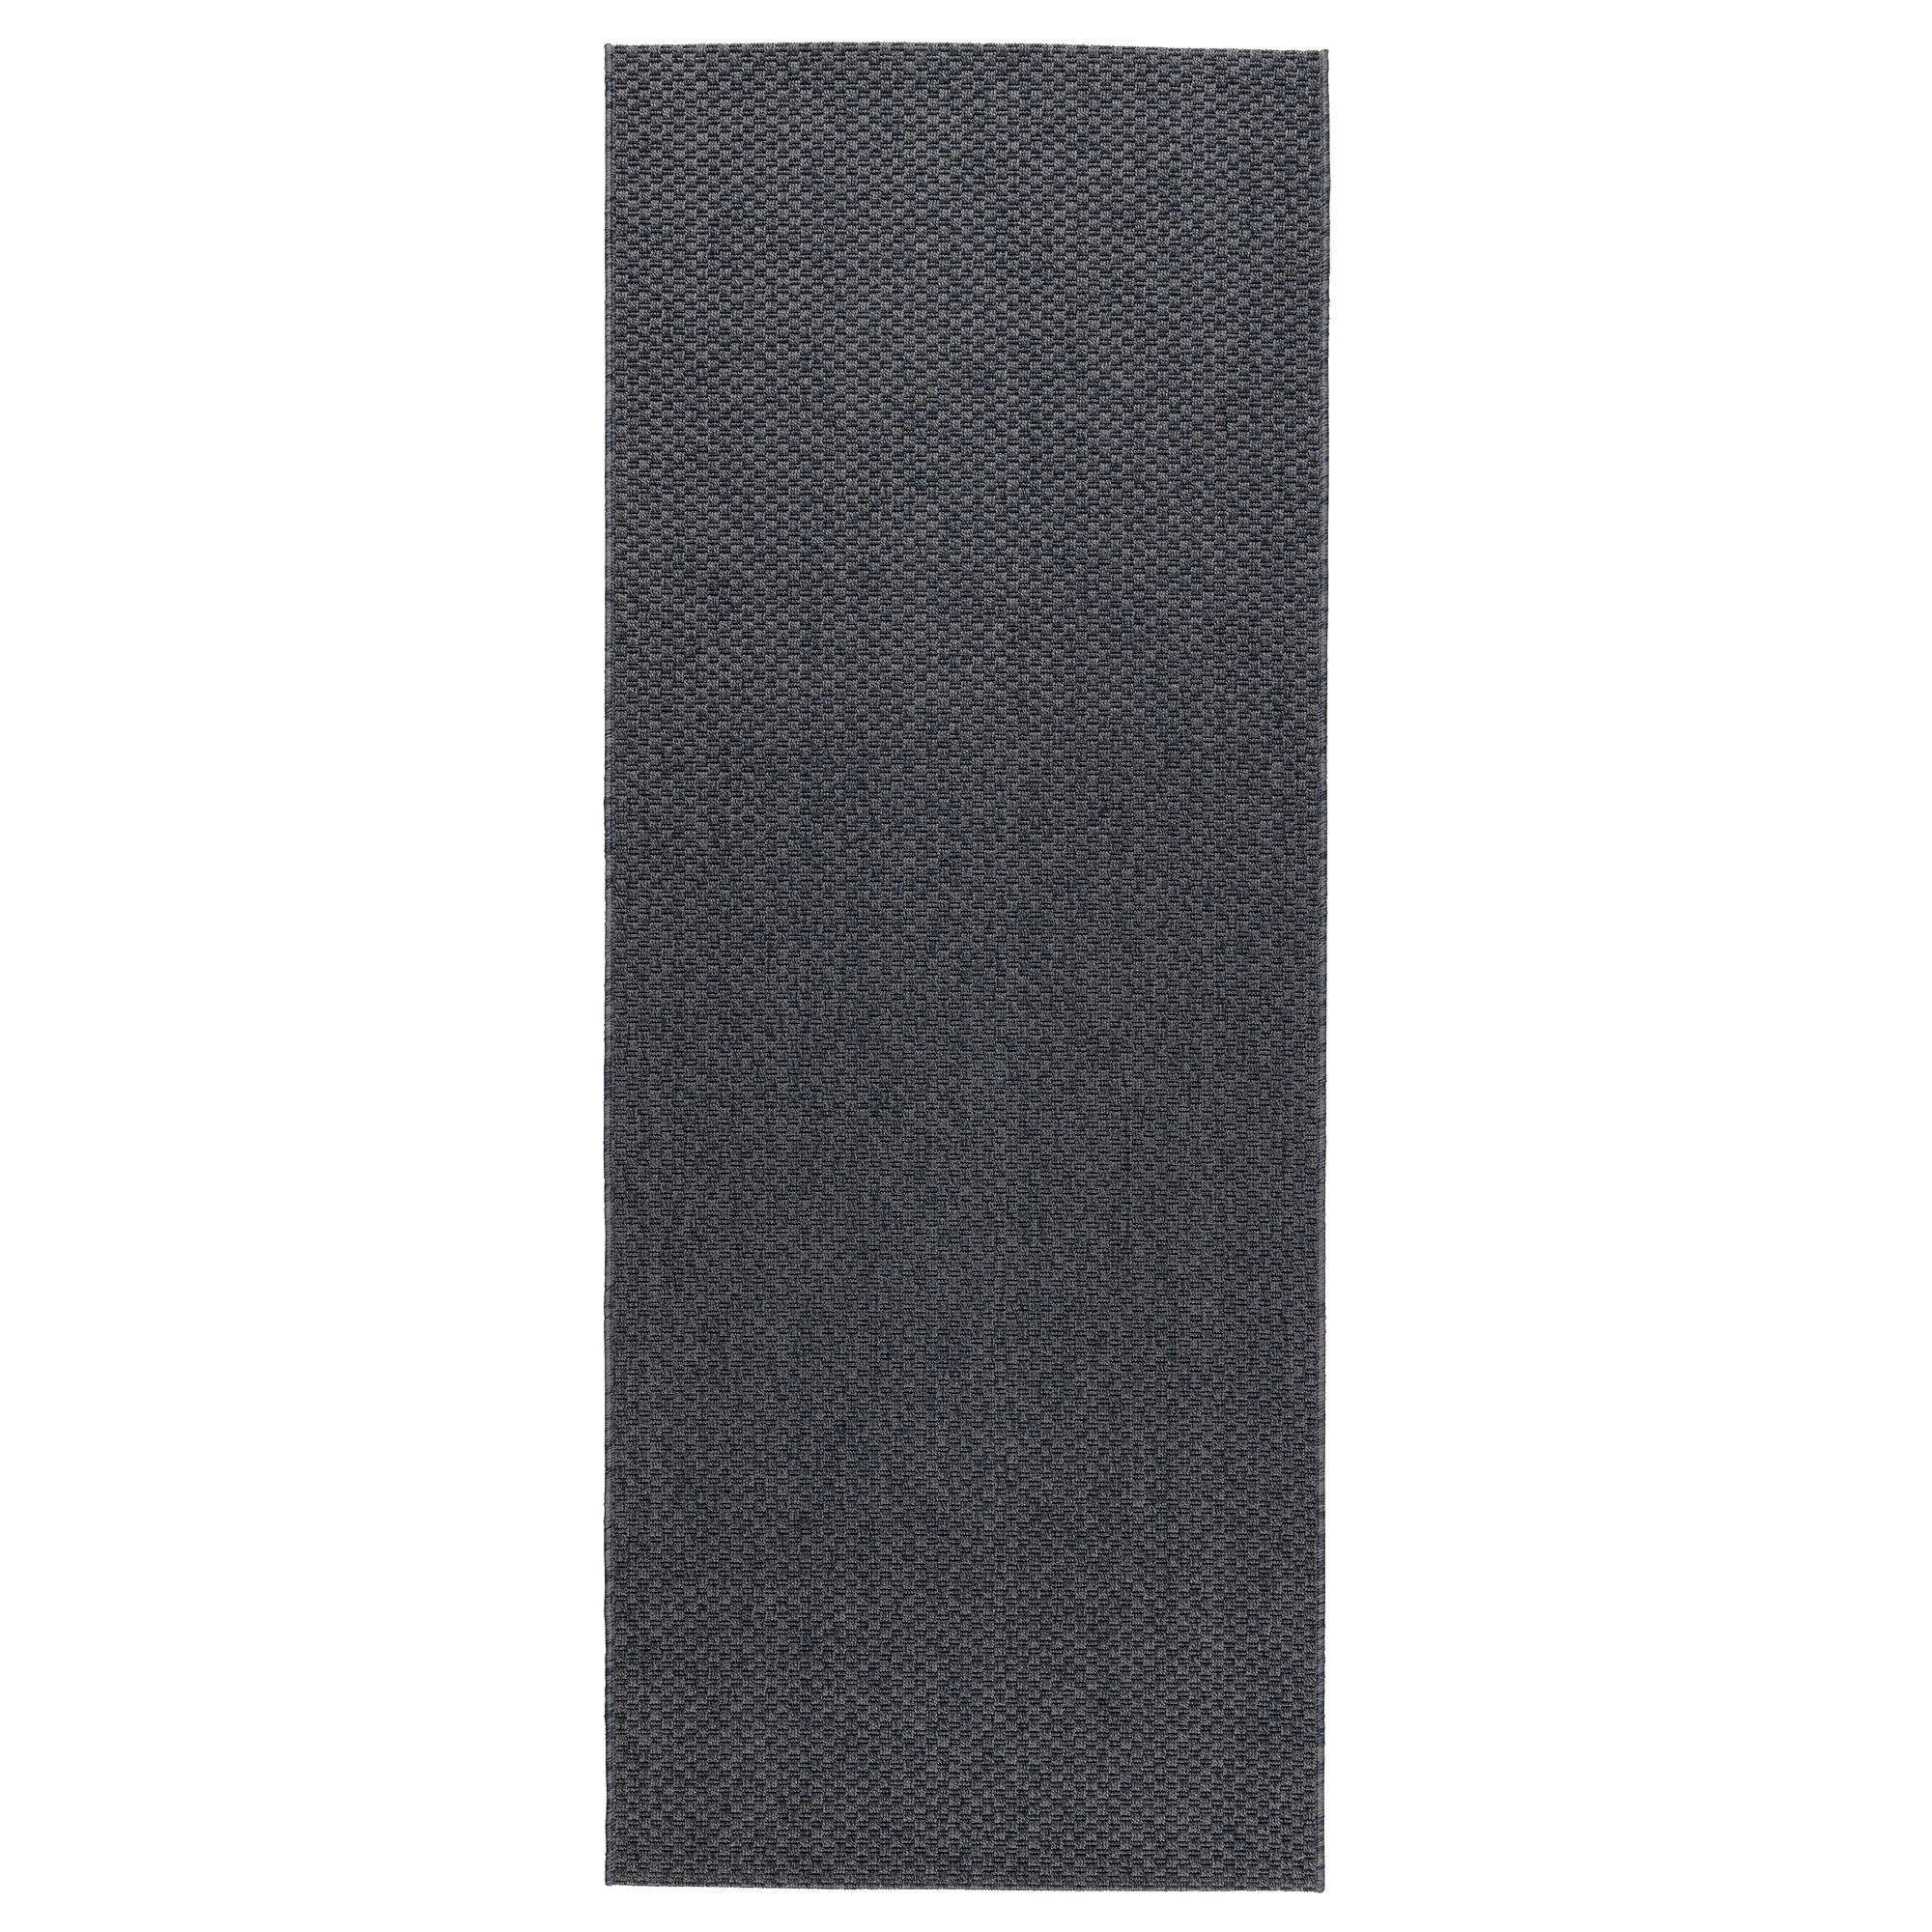 Morum Rug Flatwoven Inoutdoor Ikea Intended For Rug Runners Grey (#13 of 20)